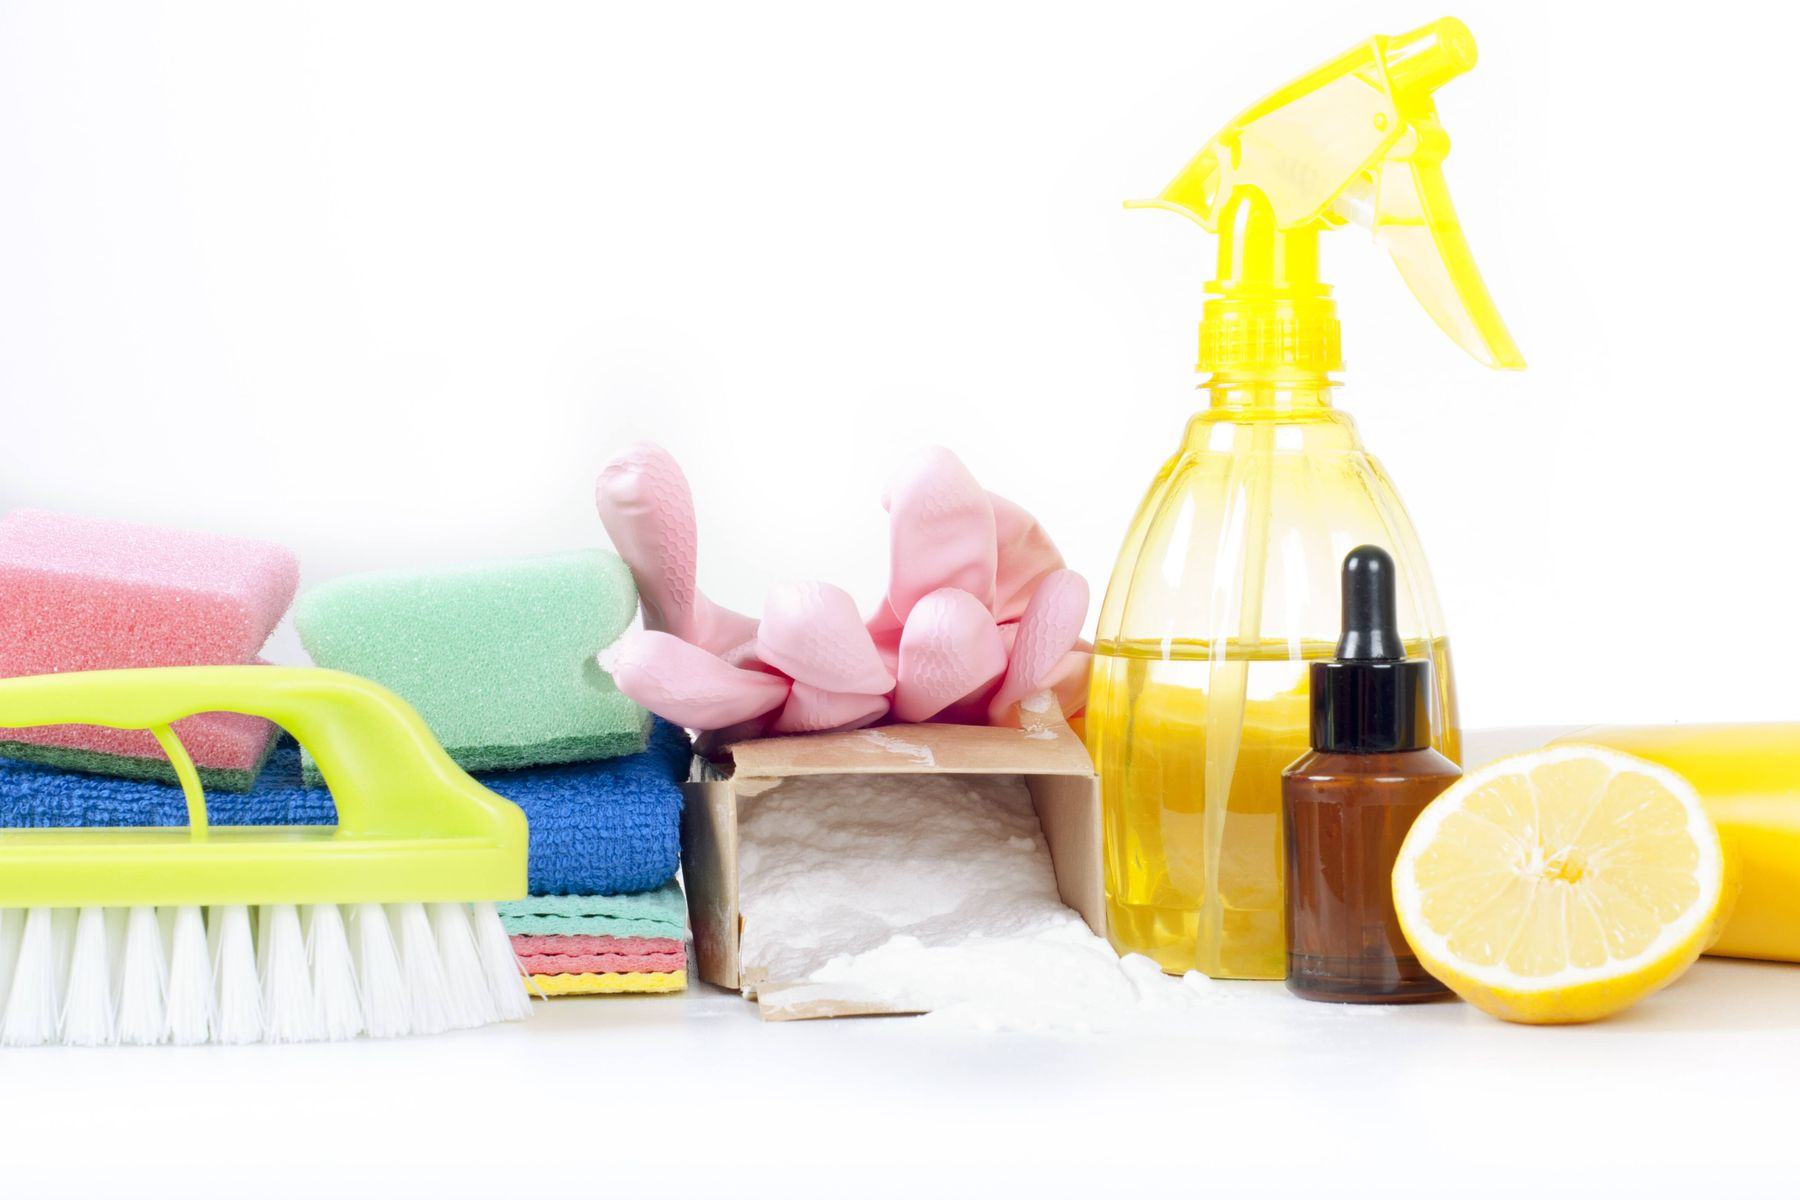 Is Homemade Or Natural Bleach Better For My Home? | Get Set Clean